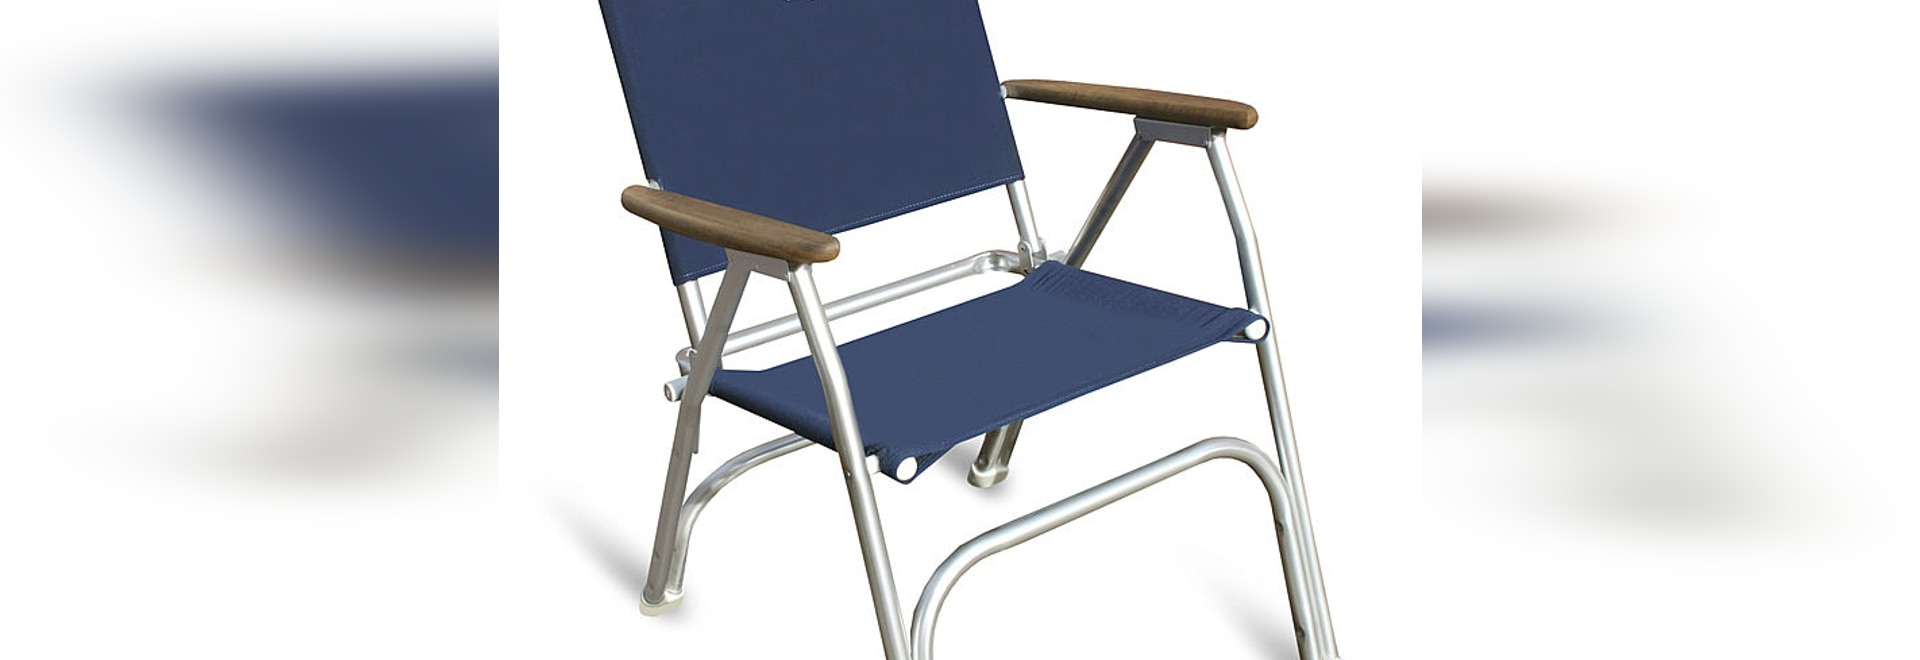 M100HB U201cHigh Back U201d FORMA Folding Aluminium Deck Chair For Extreme Back  Support